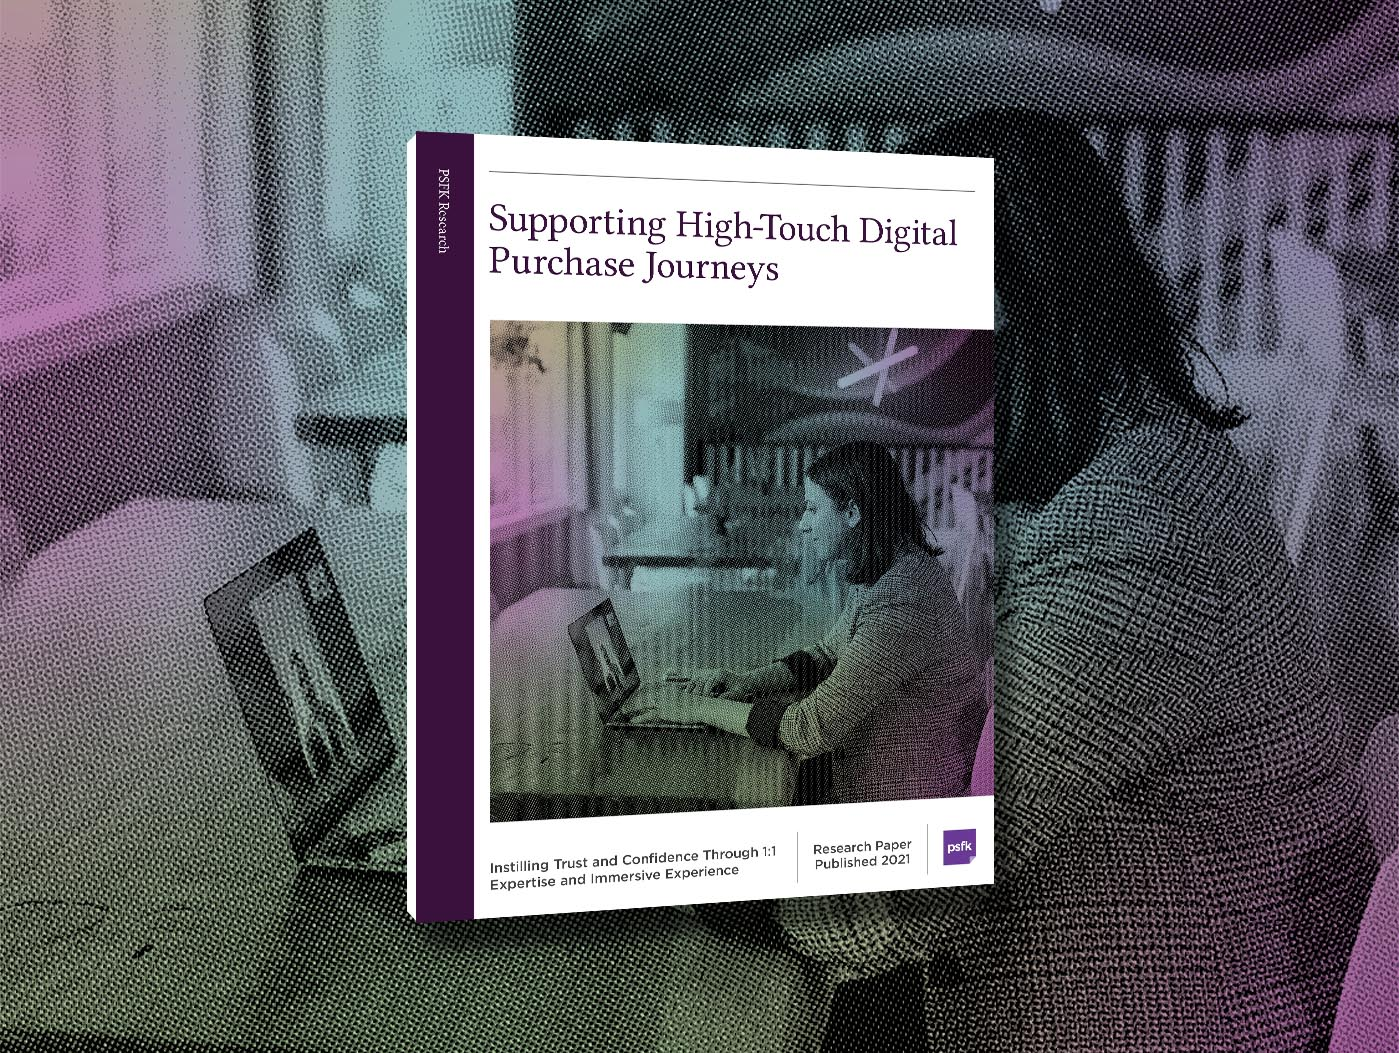 Supporting High-Touch Digital Purchase Journeys